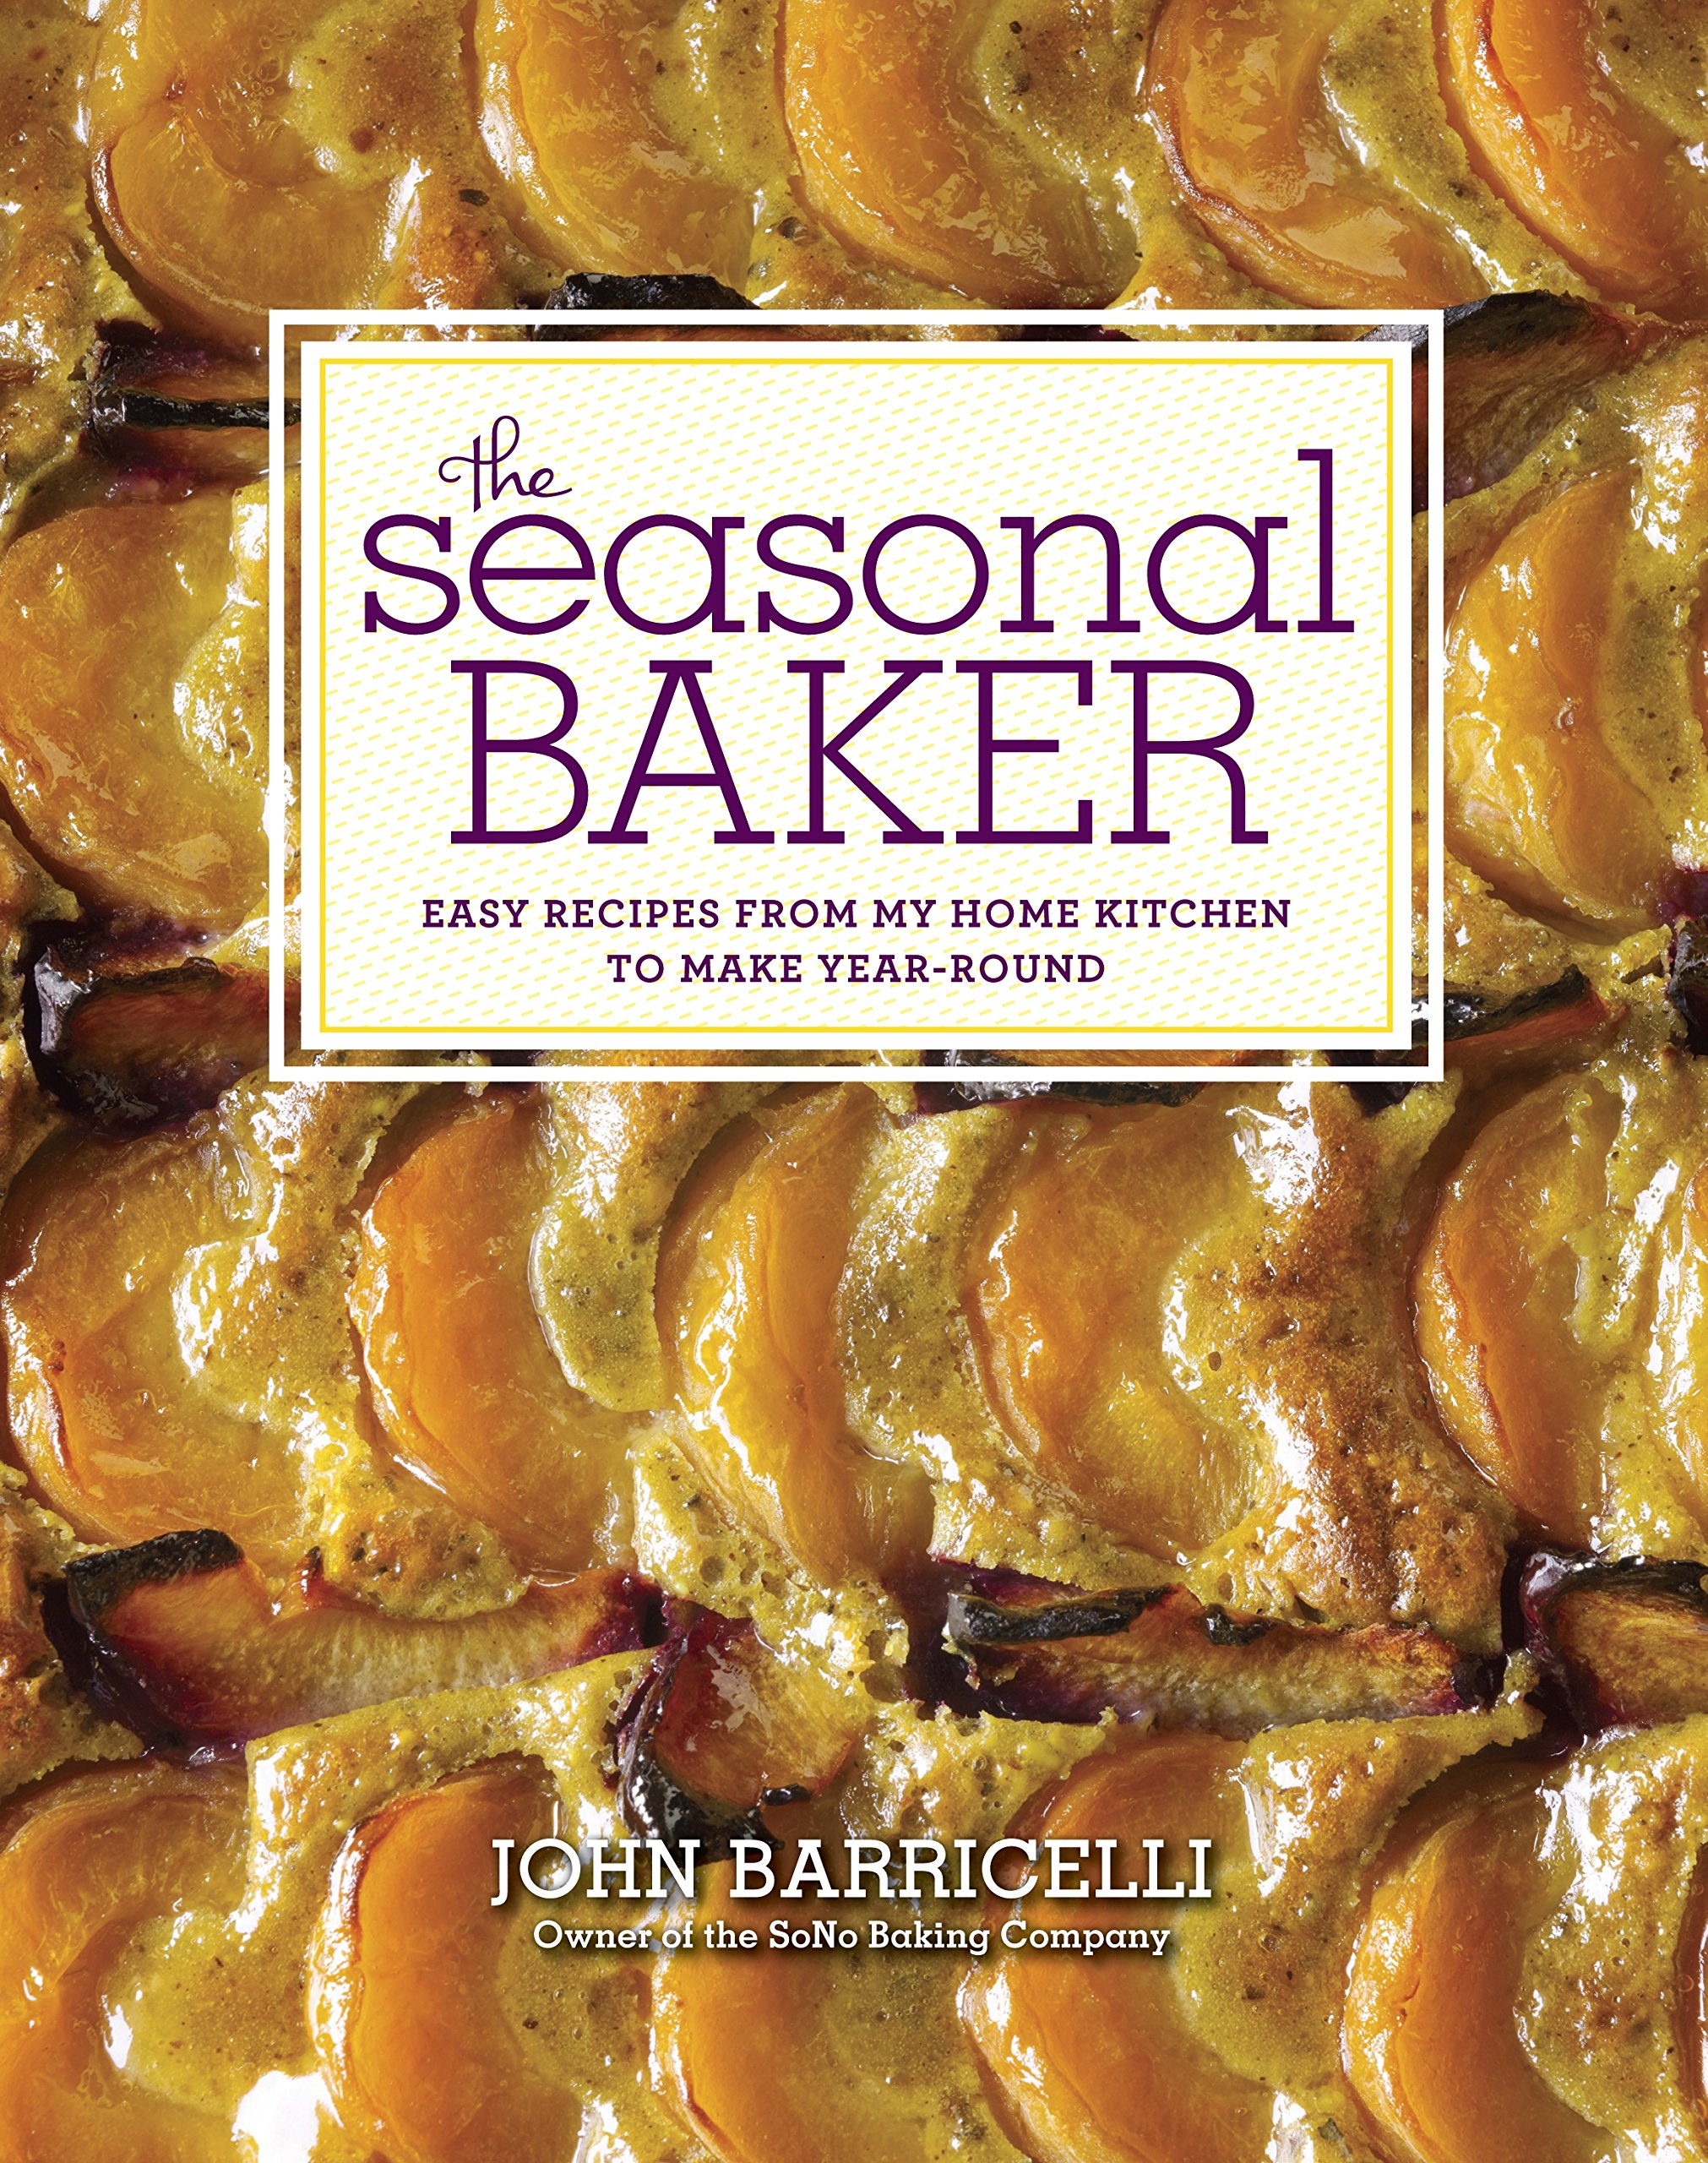 The Seasonal Baker: Easy Recipes from My Home Kitchen to Make Year-Round by Clarkson Potter